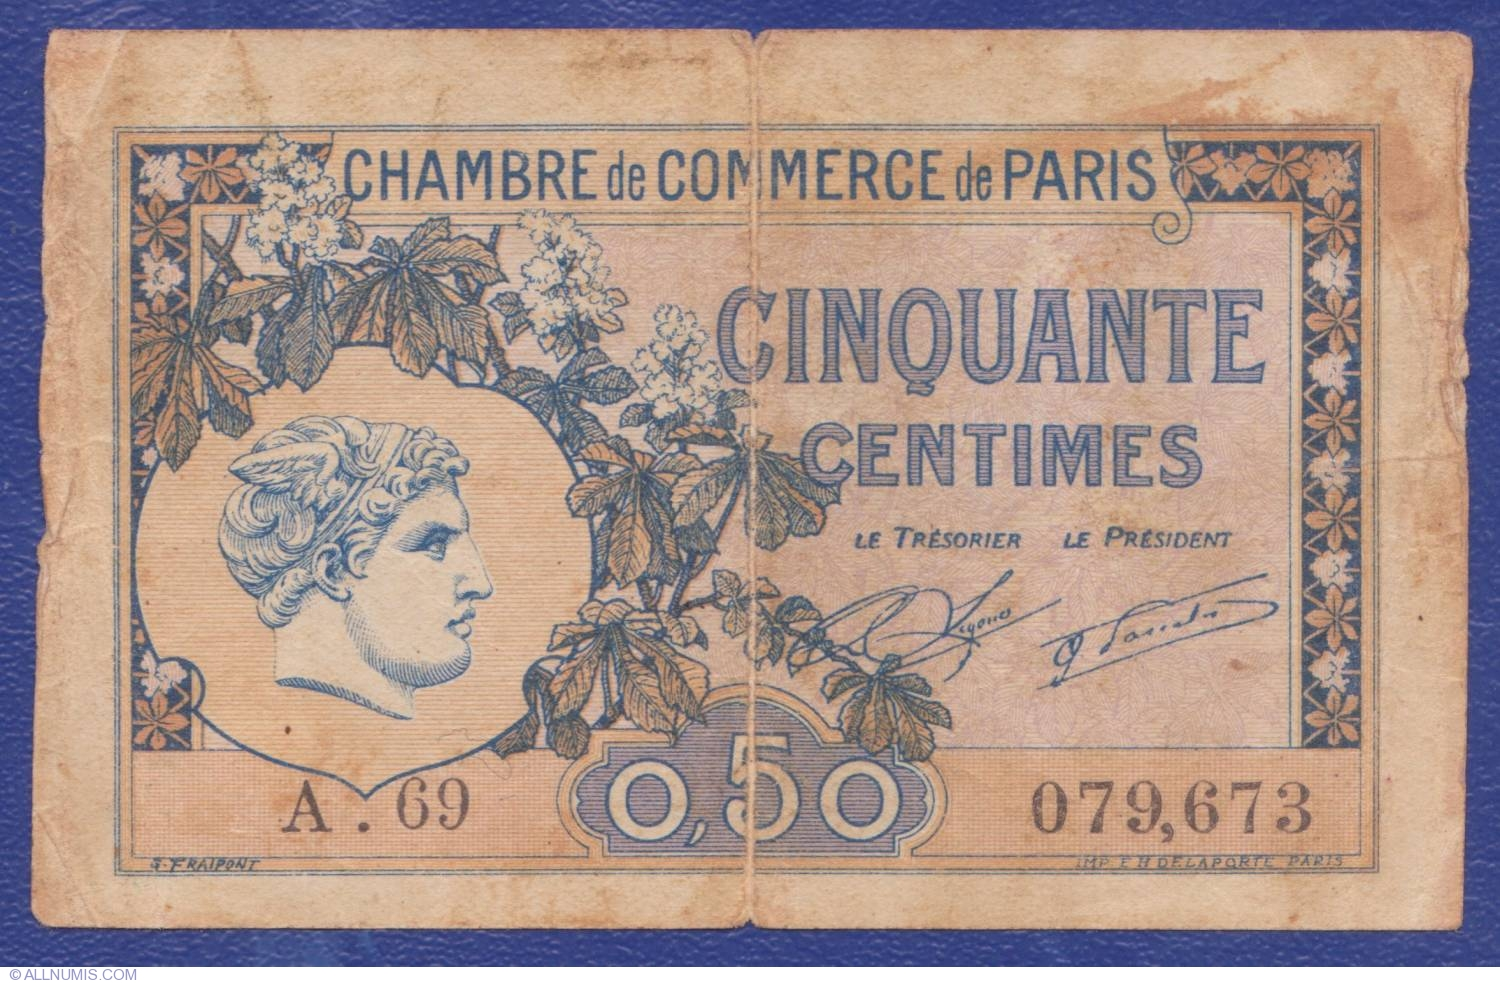 50 centimes 1920 paris chambre de commerce france for Chambre de commerce besancon